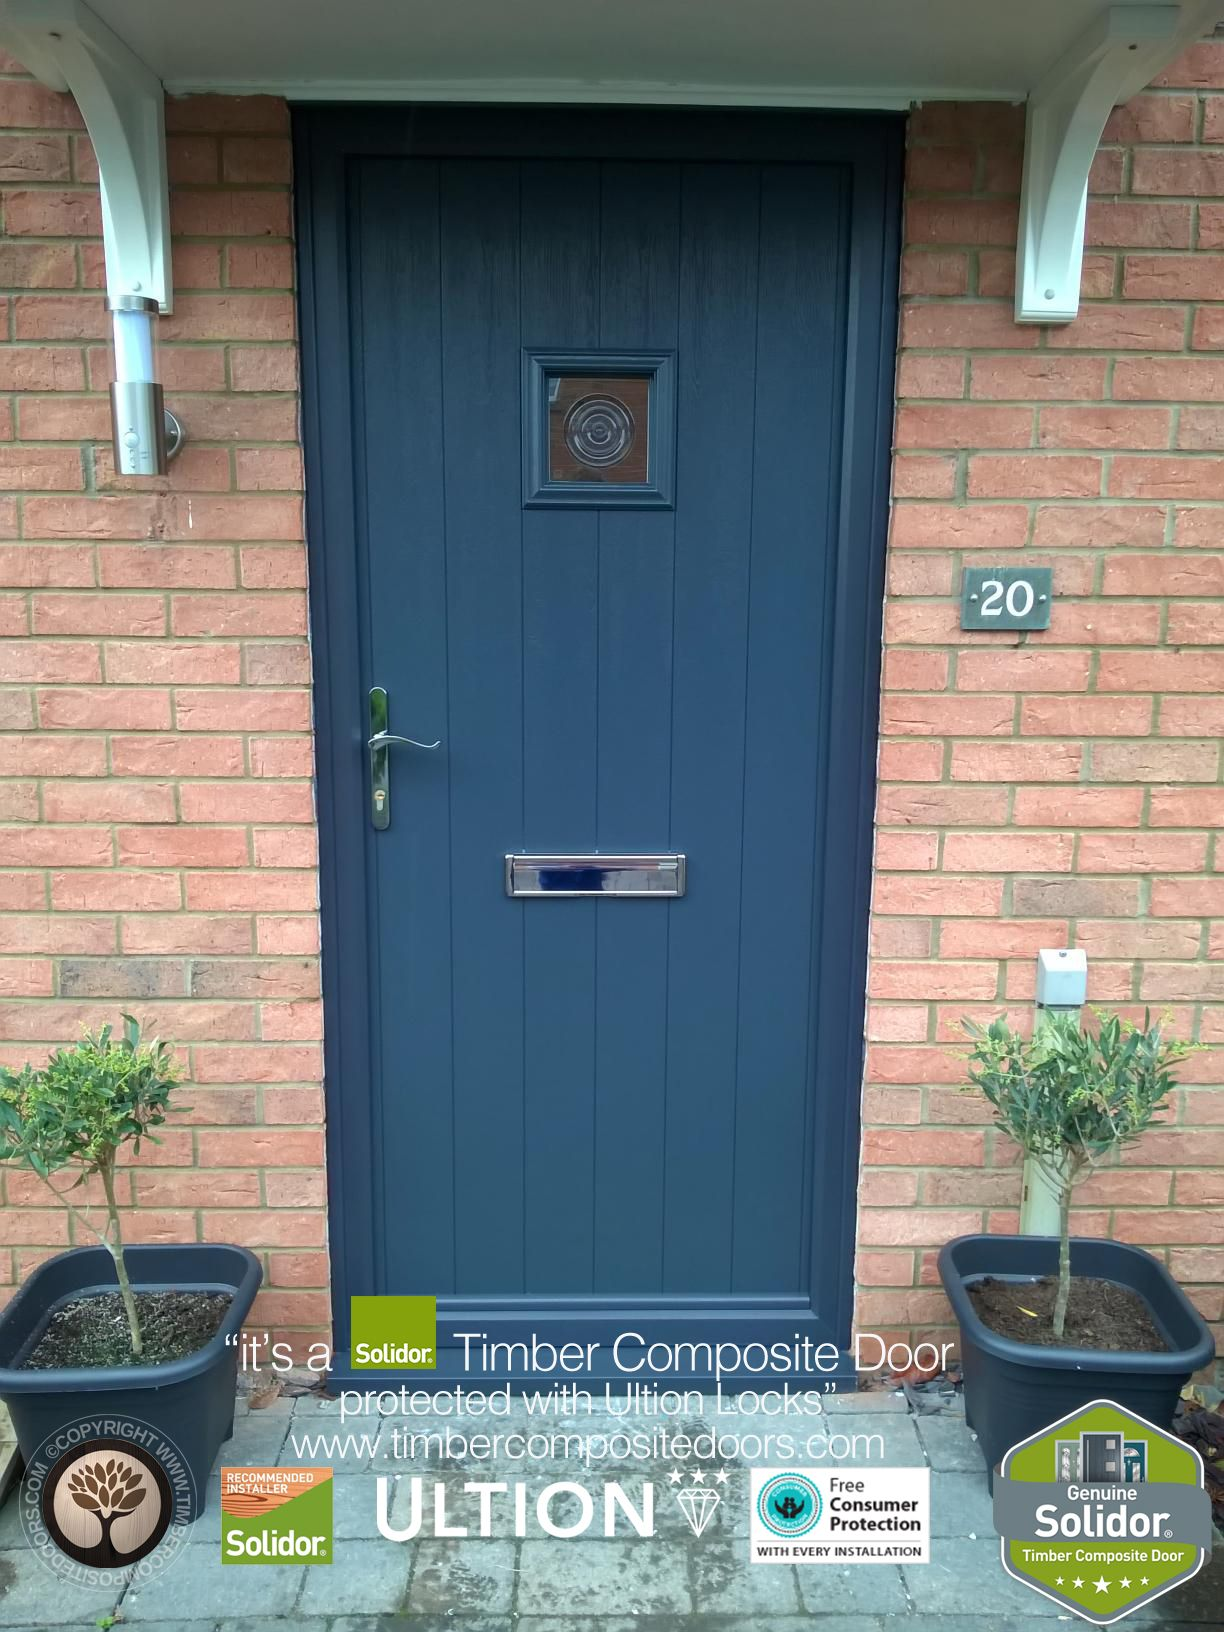 Solidor Timber Composite Doors With Ultion Locks Solidor Timber Composite Doors 12 Months Interest Free Credit Real Pic Composite Door Timber Door Installation